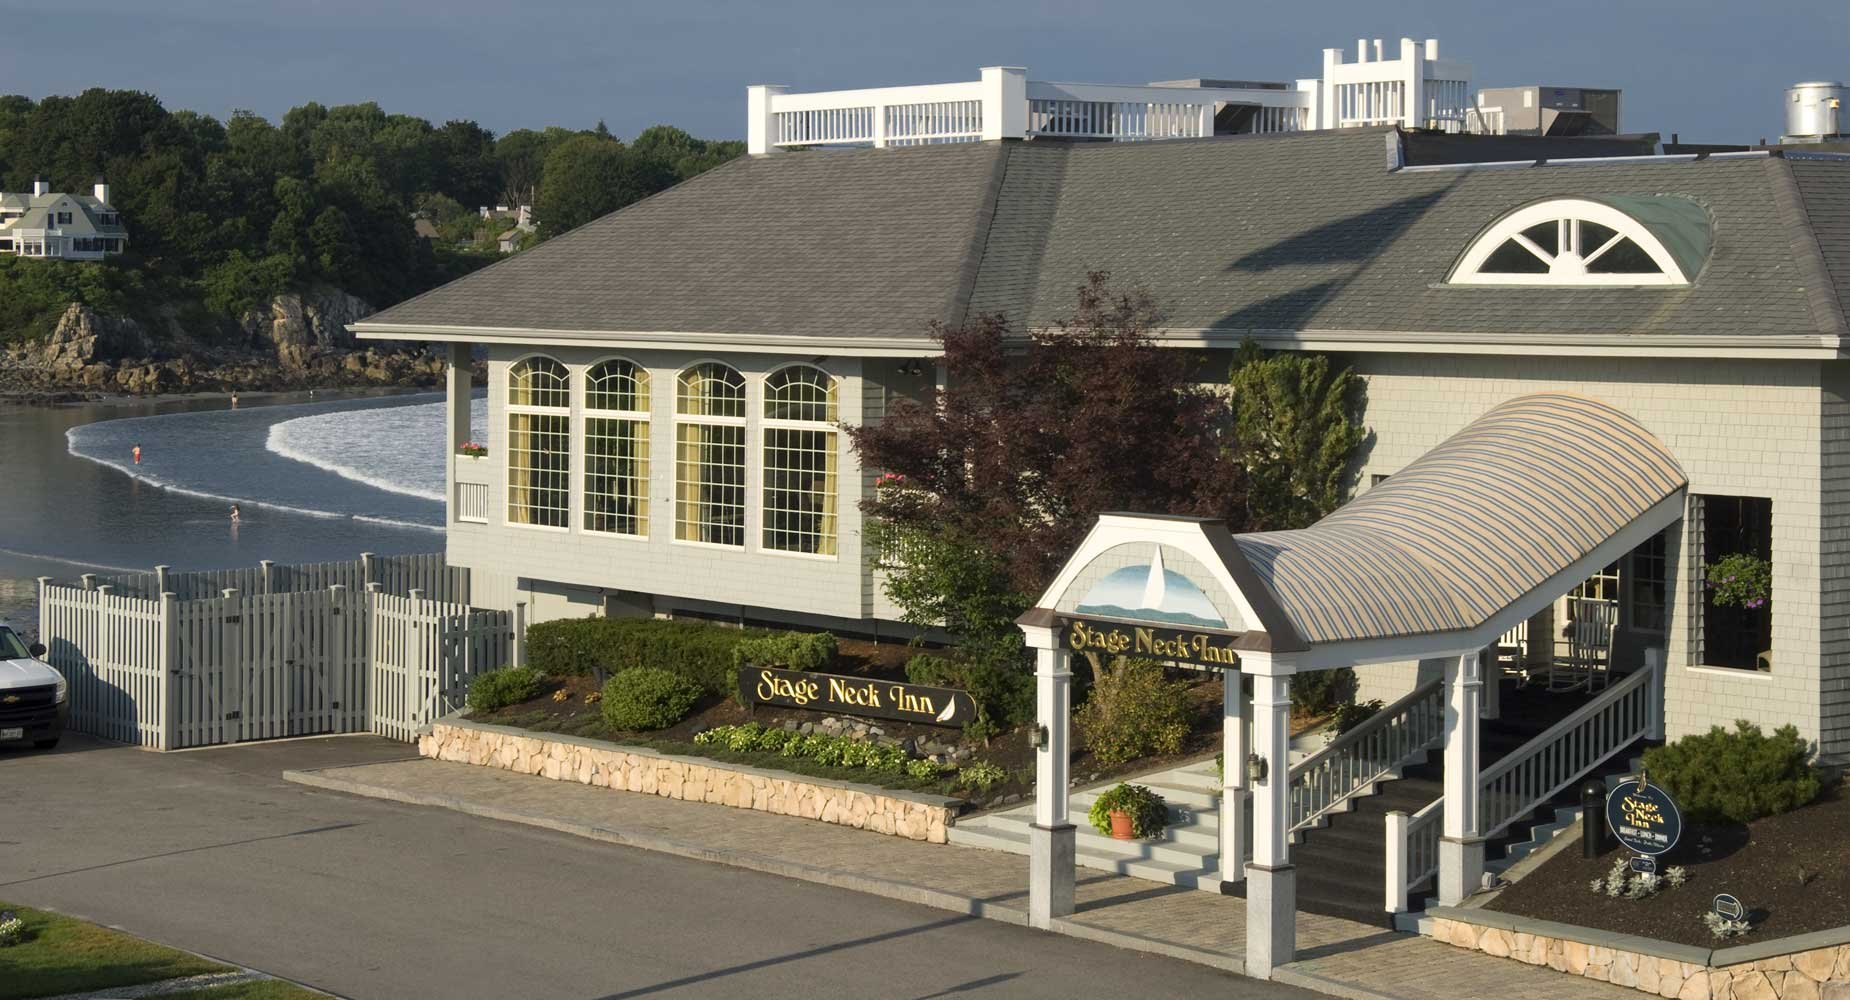 """Sandpipers is situated on a peninsula overlooking the beach and the """"summer cottages"""" that dot the shore. The small-group meeting space is within Stage Neck Inn"""